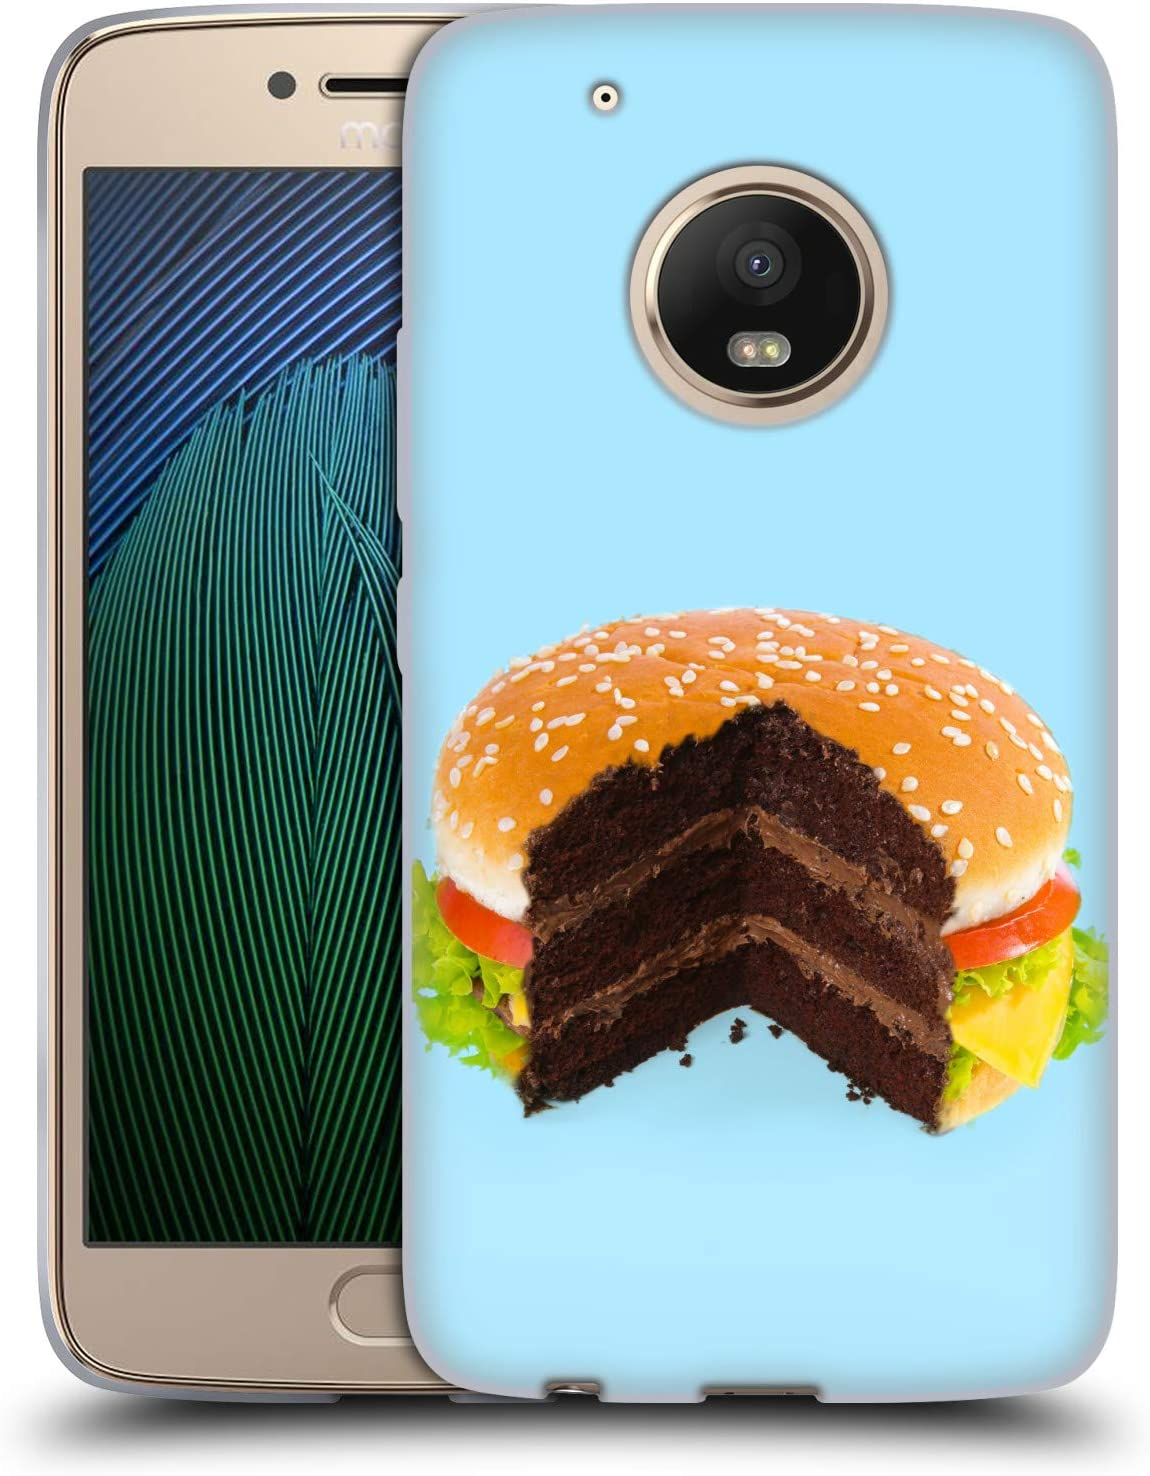 Head Case Designs Officially Licensed Paul Fuentes Hamburger Cake Junk Food Soft Gel Case Compatible with Motorola Moto G5 Plus